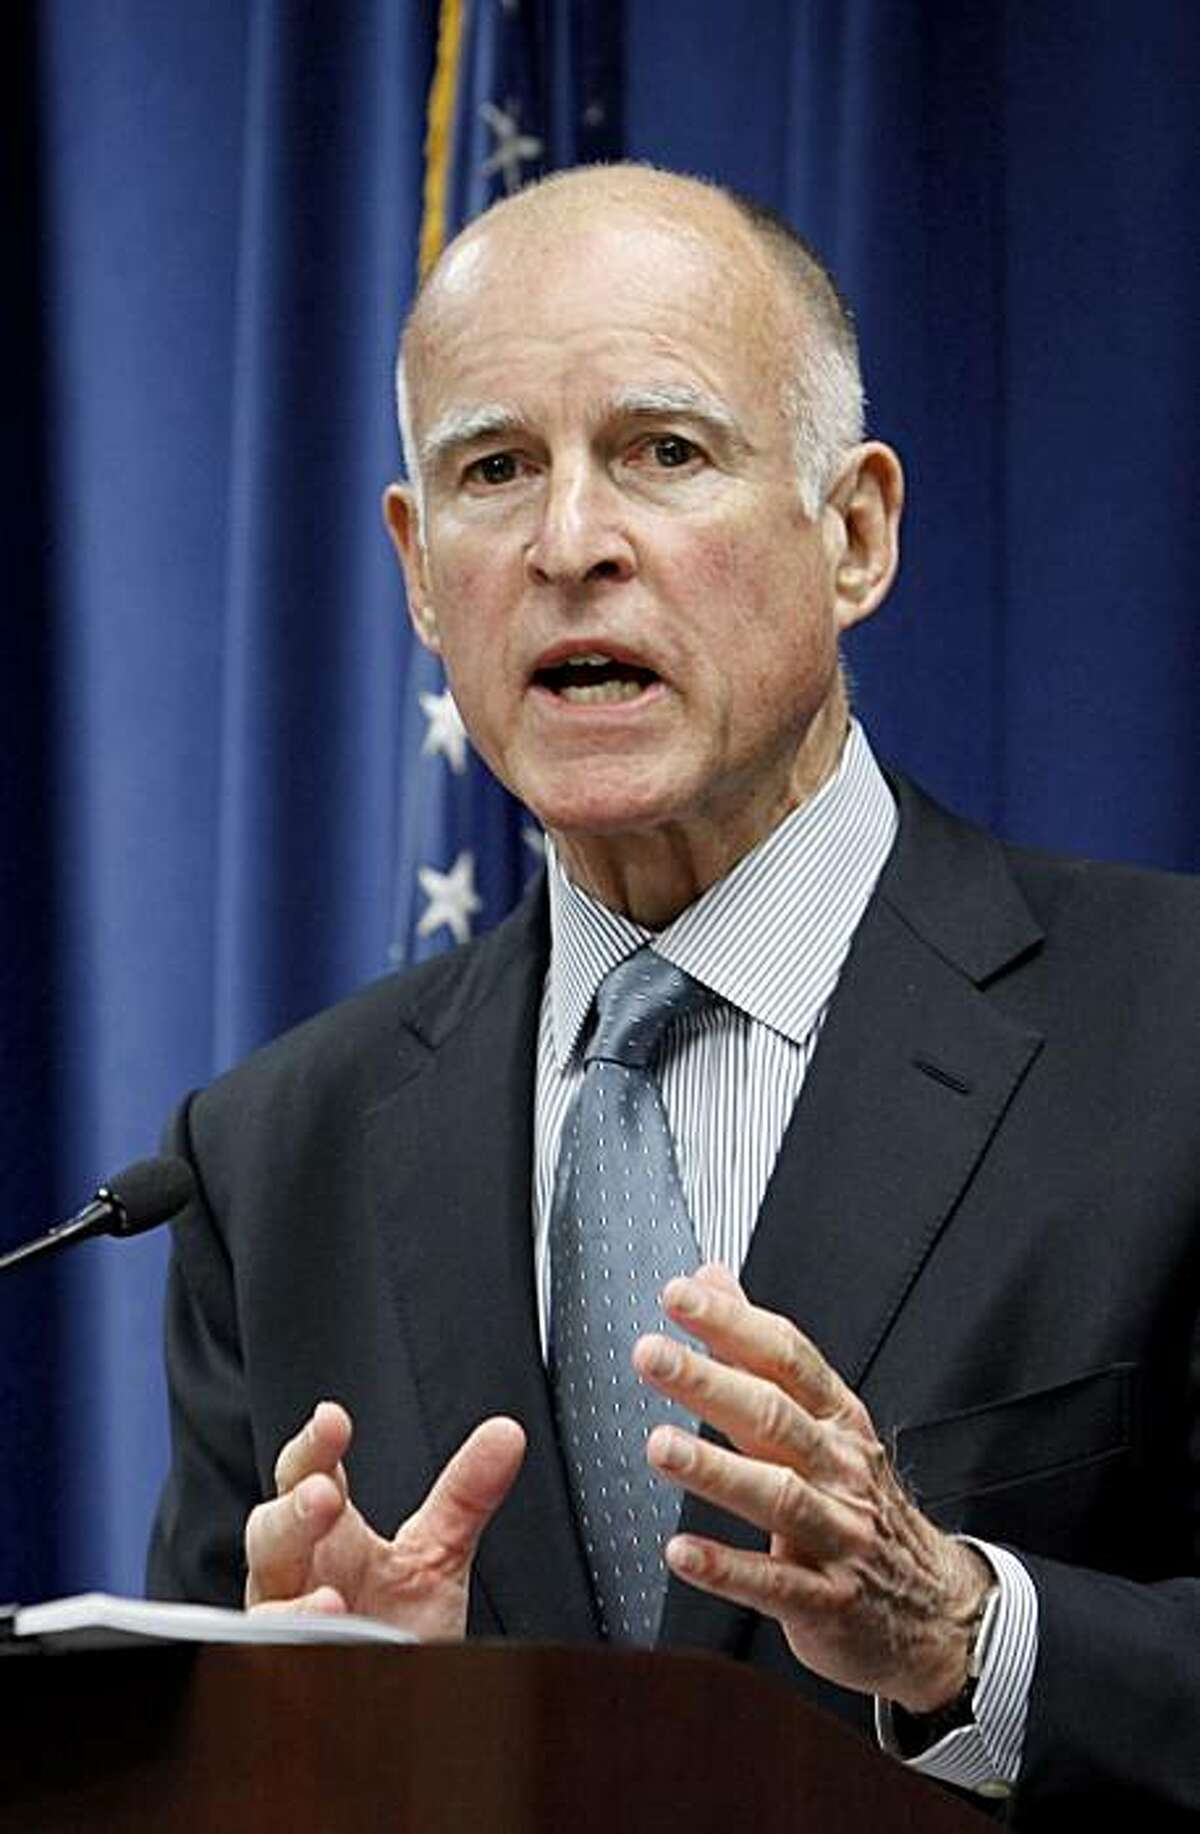 Attorney General Jerry Brown gestures as he discusses a lawsuit his office filed against two former officials of CalPERS, the nation's largest public pension fund, for fraud during a news conference in Sacramento, Calif., Thursday, May 6, 2010. The lawsuit, which was filed Wednesday in Los Angeles County Superior Court. alleges that former CalPERS Chief Executive Federico Buenrostro Jr. and former CalPers board member Alfred Villalobos were involved in a system of kickbacks in exchange for outside firmswinning a piece of the fund's lucrative investment portfolio.